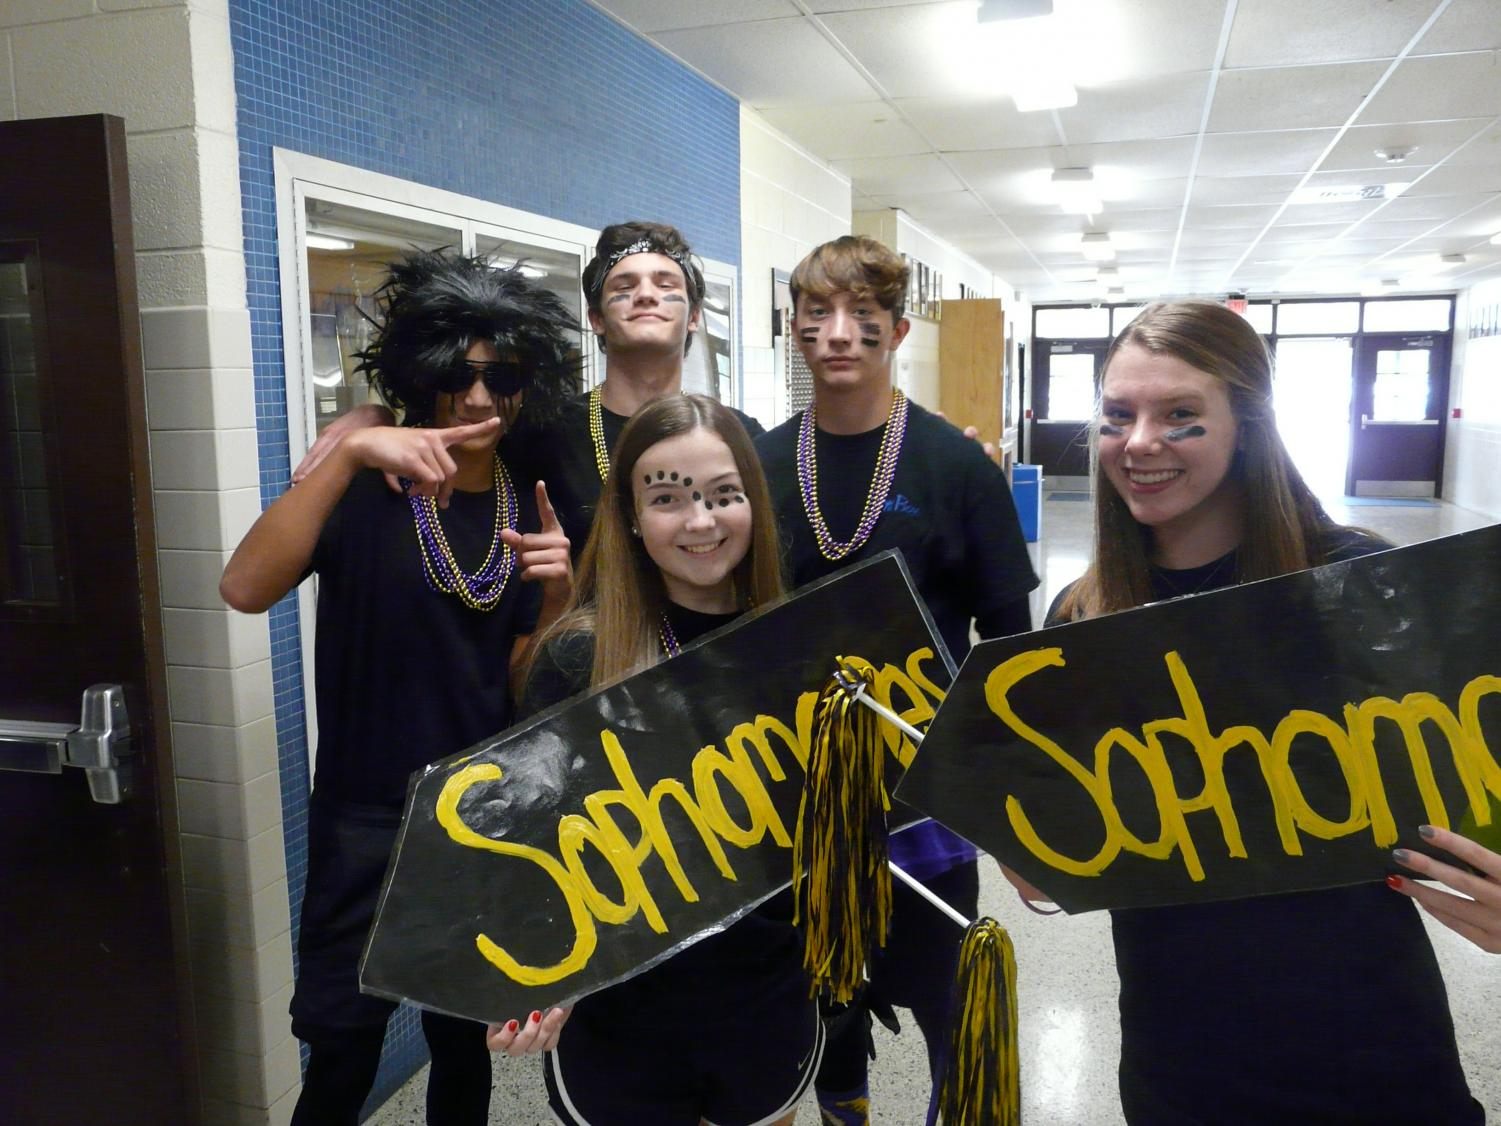 Sophomores+pose+with+their+class+signs.